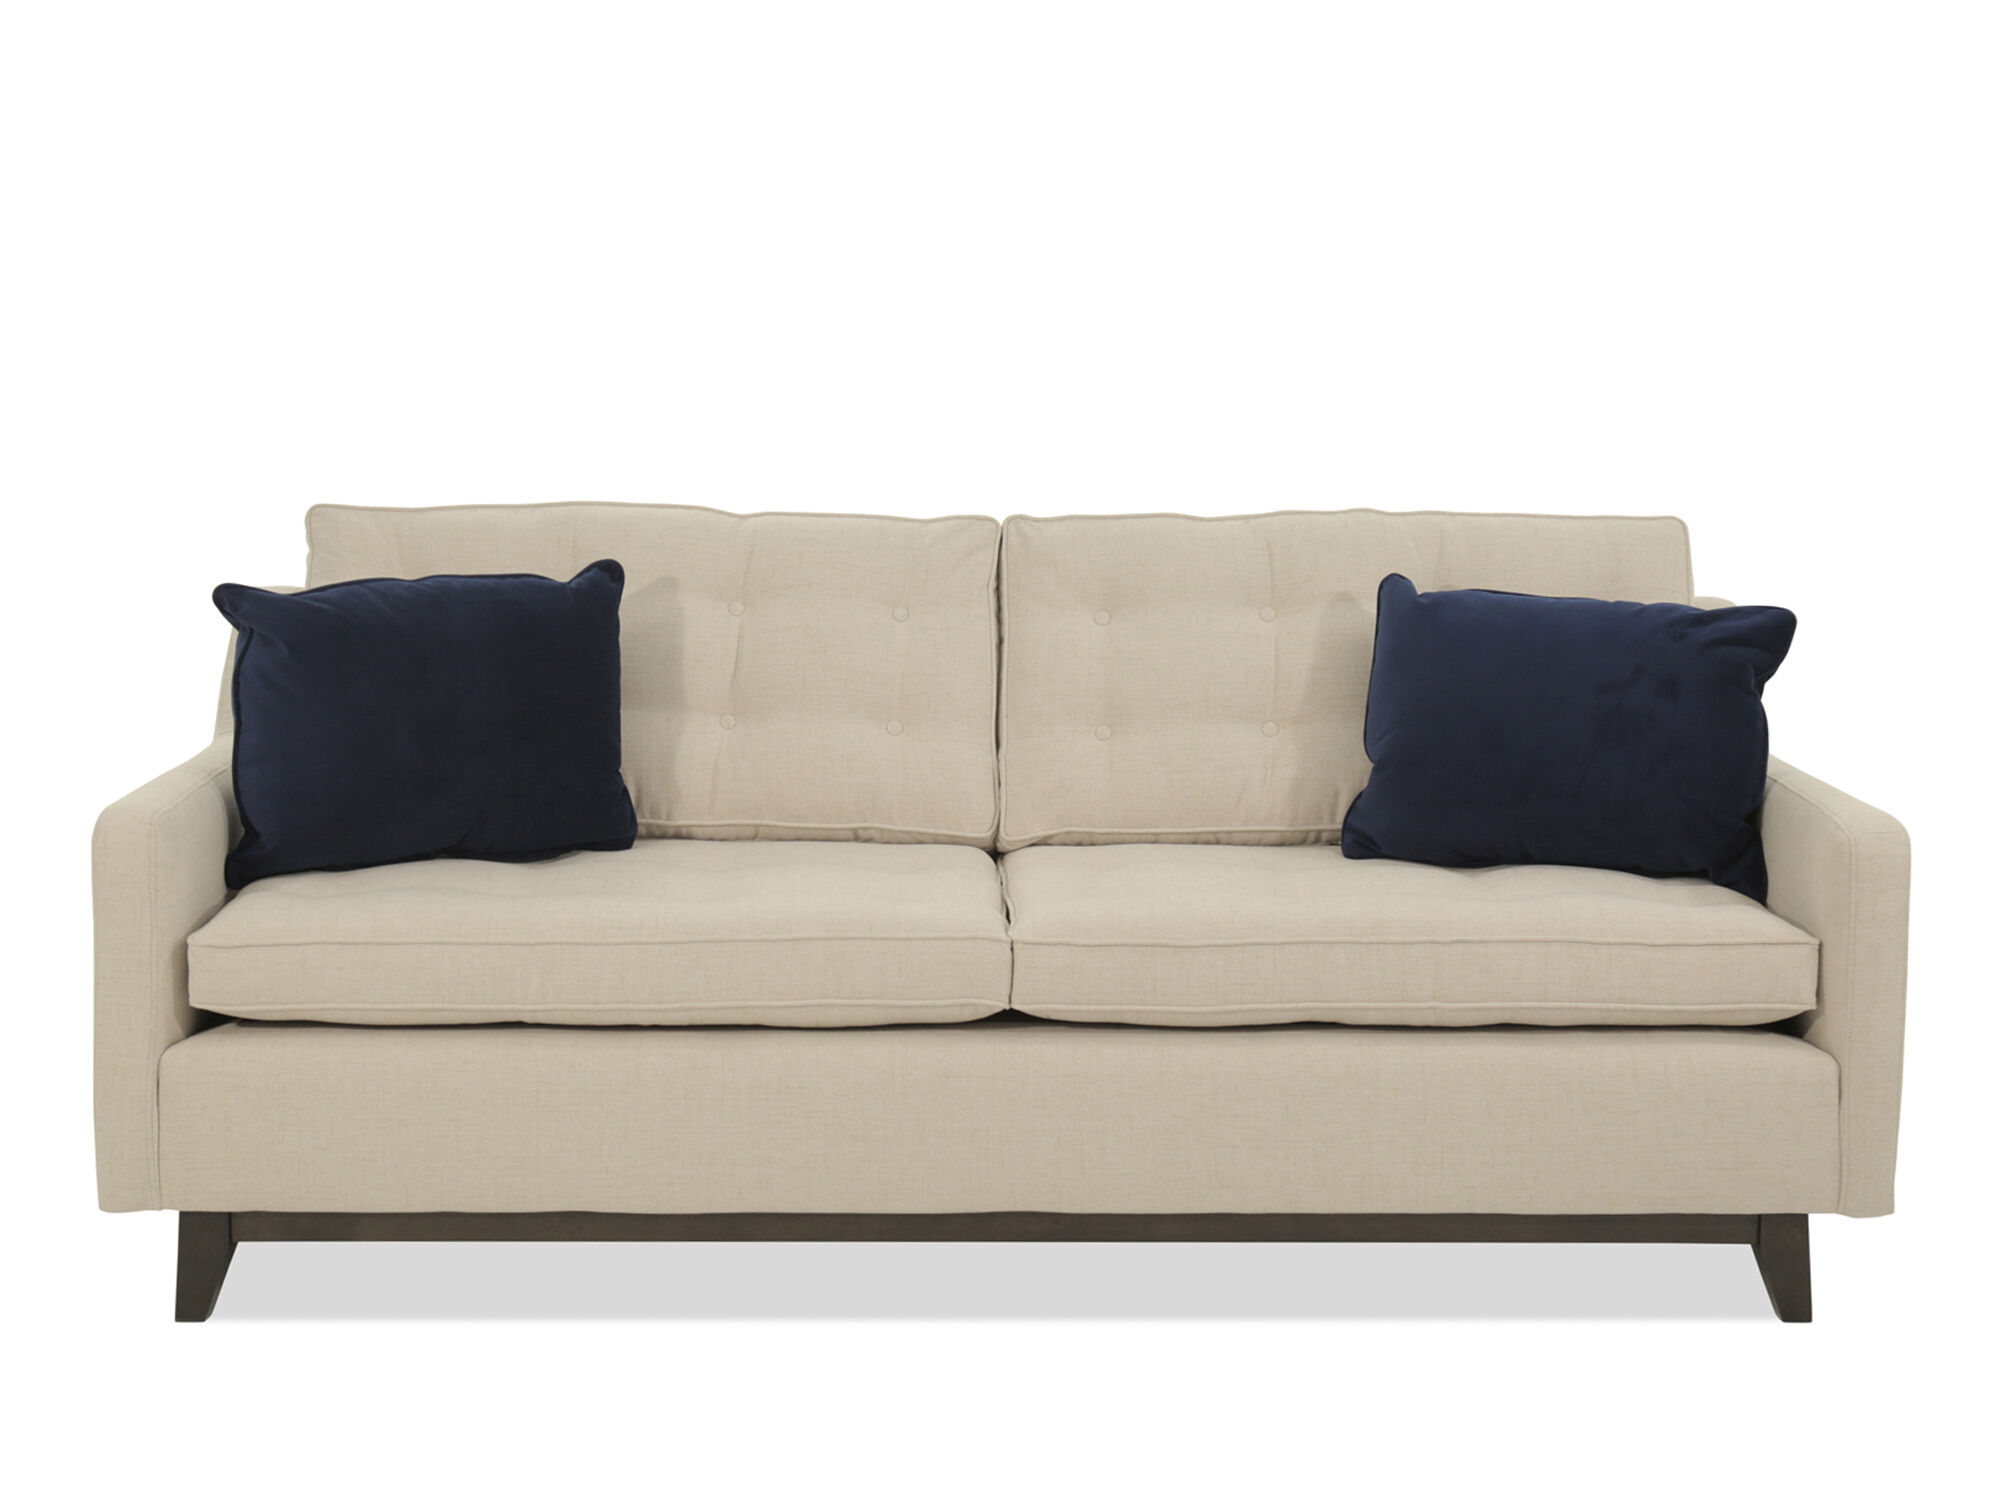 Broyhill Tula Sofa  Mathis Brothers Furniture